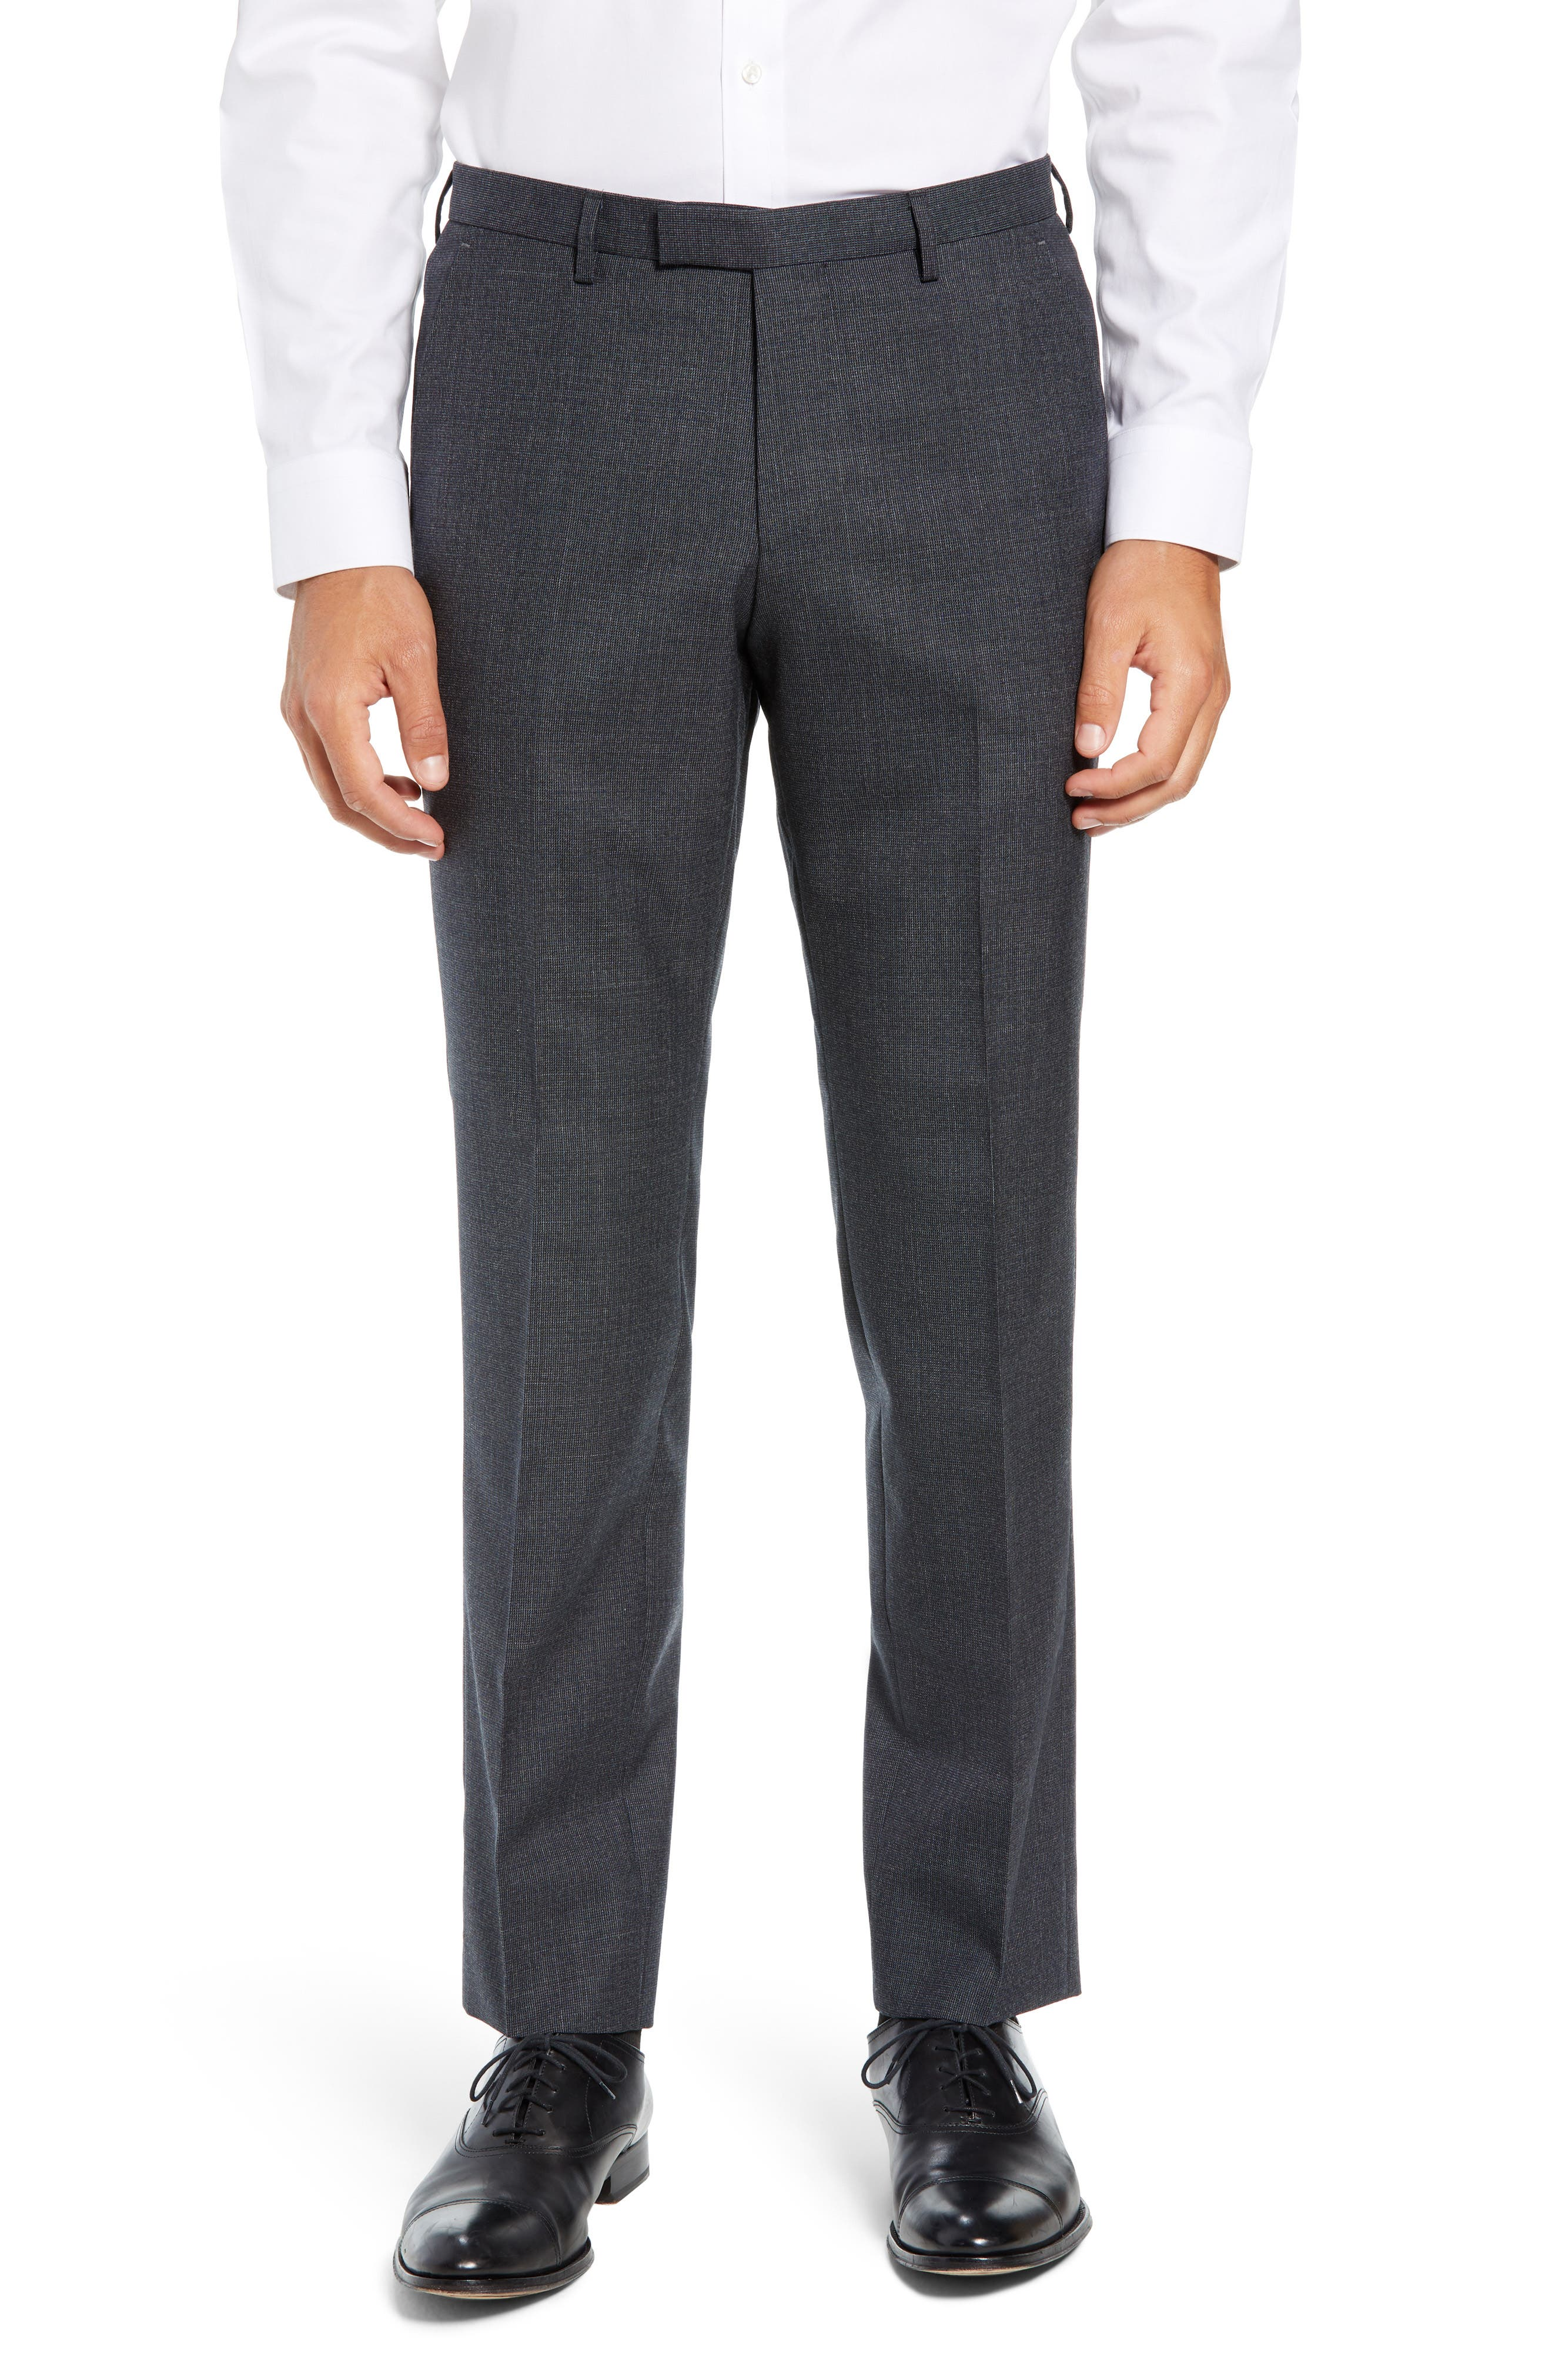 Leenon Flat Front Solid Wool Trousers,                             Main thumbnail 1, color,                             OPEN BLUE